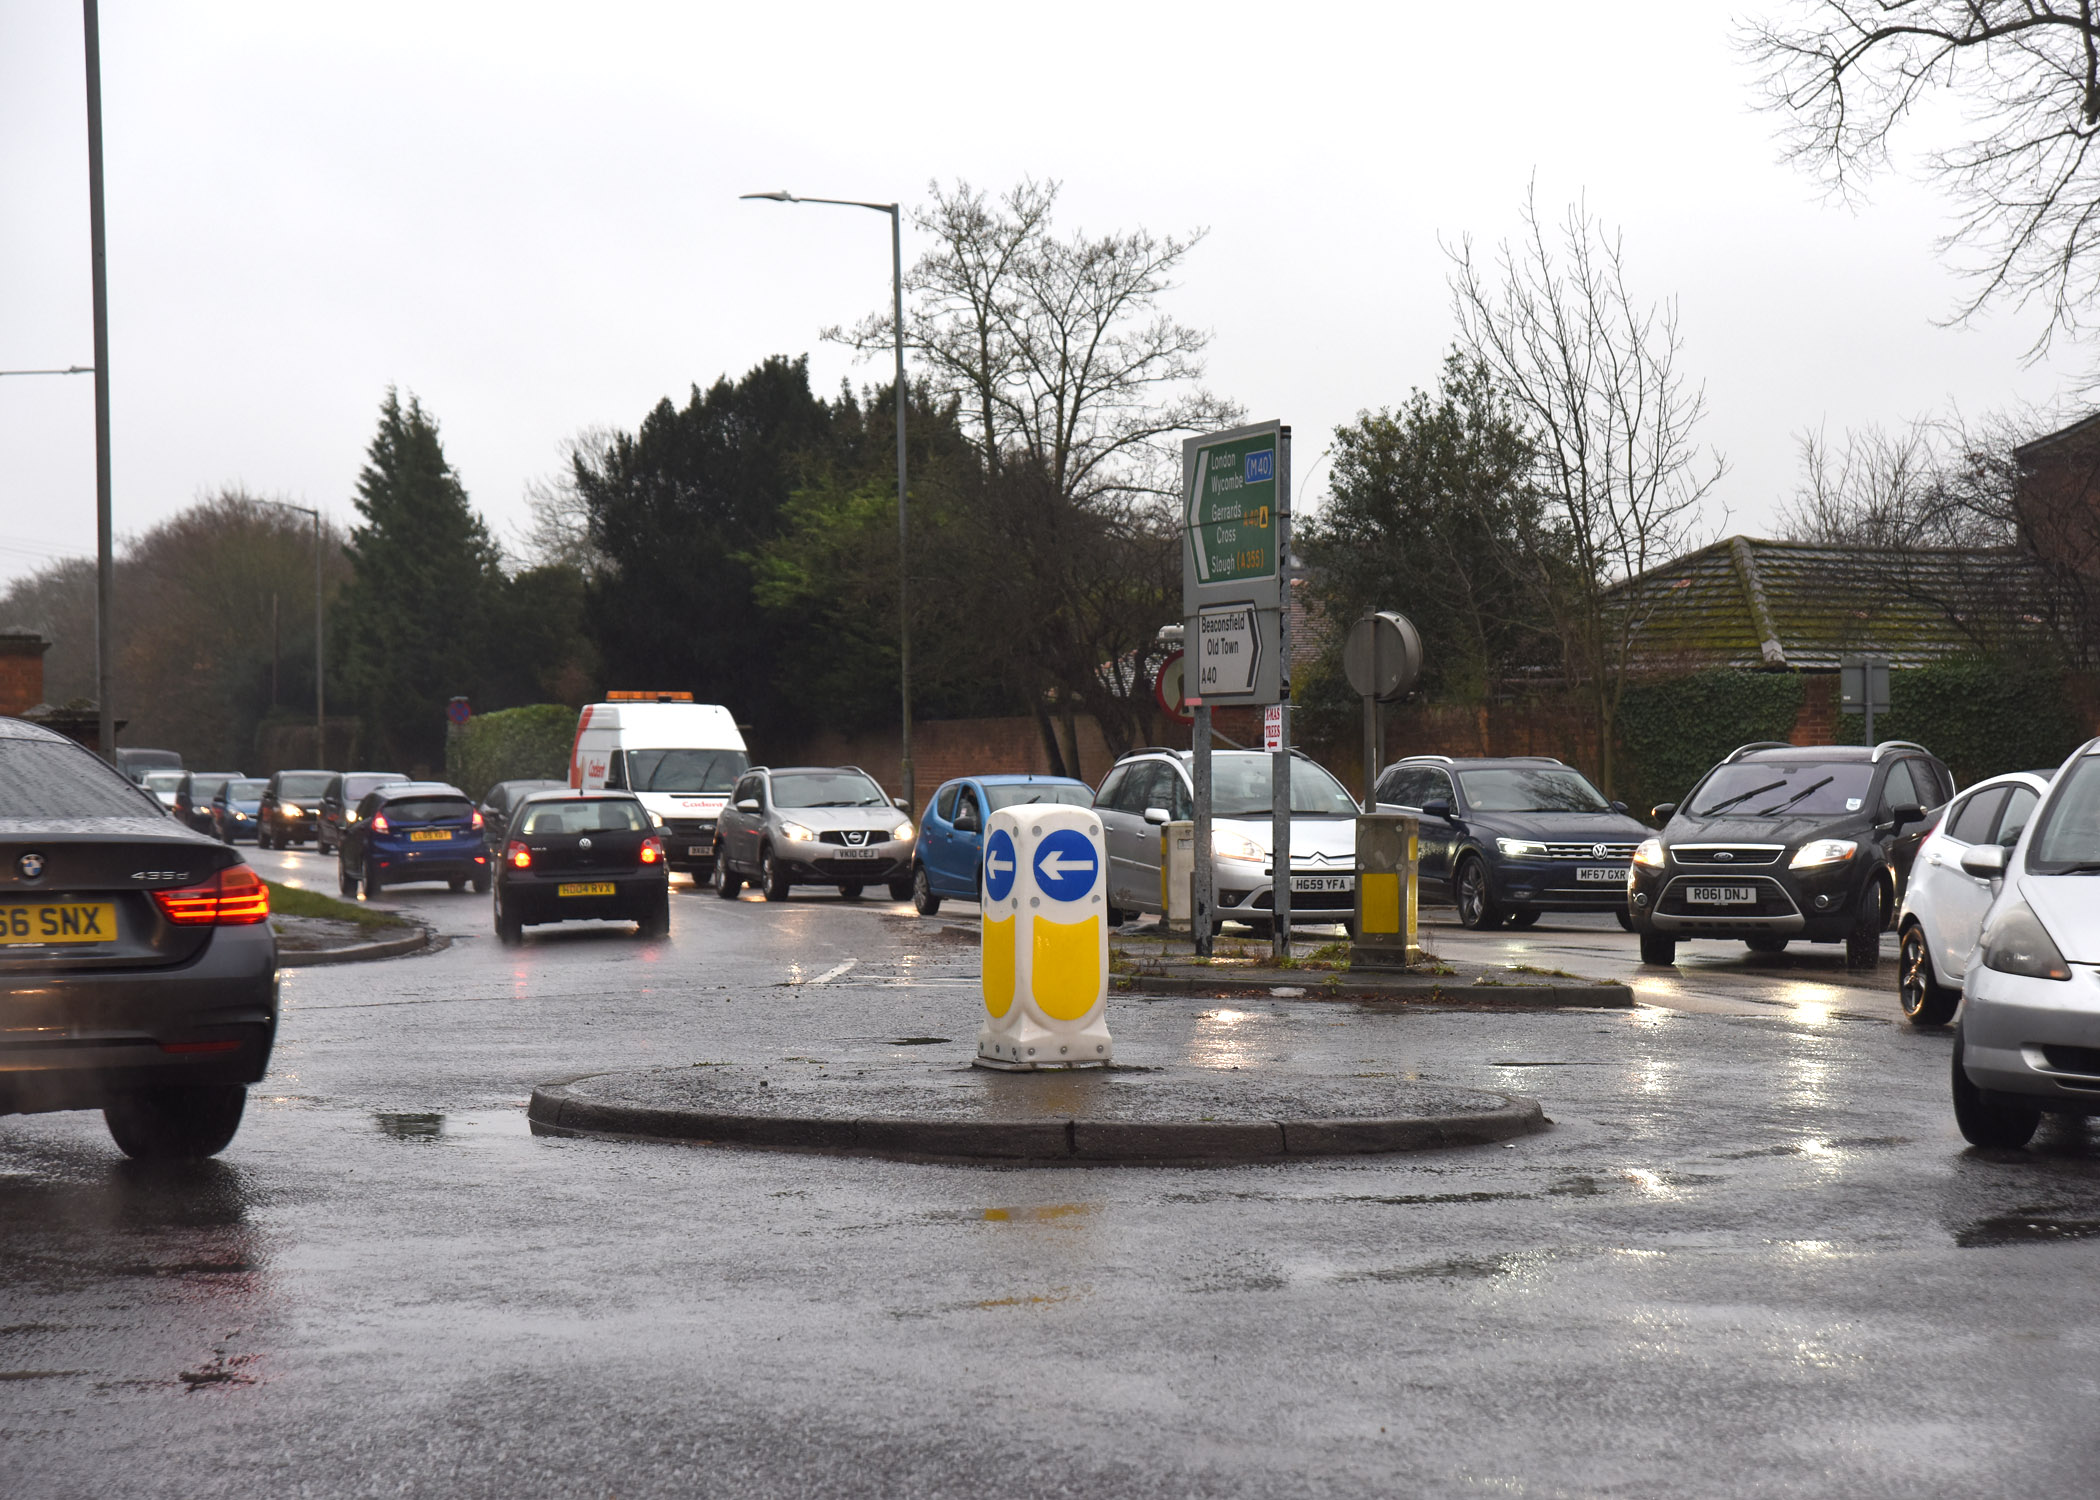 Drivers stuck in gridlocked traffic following crash